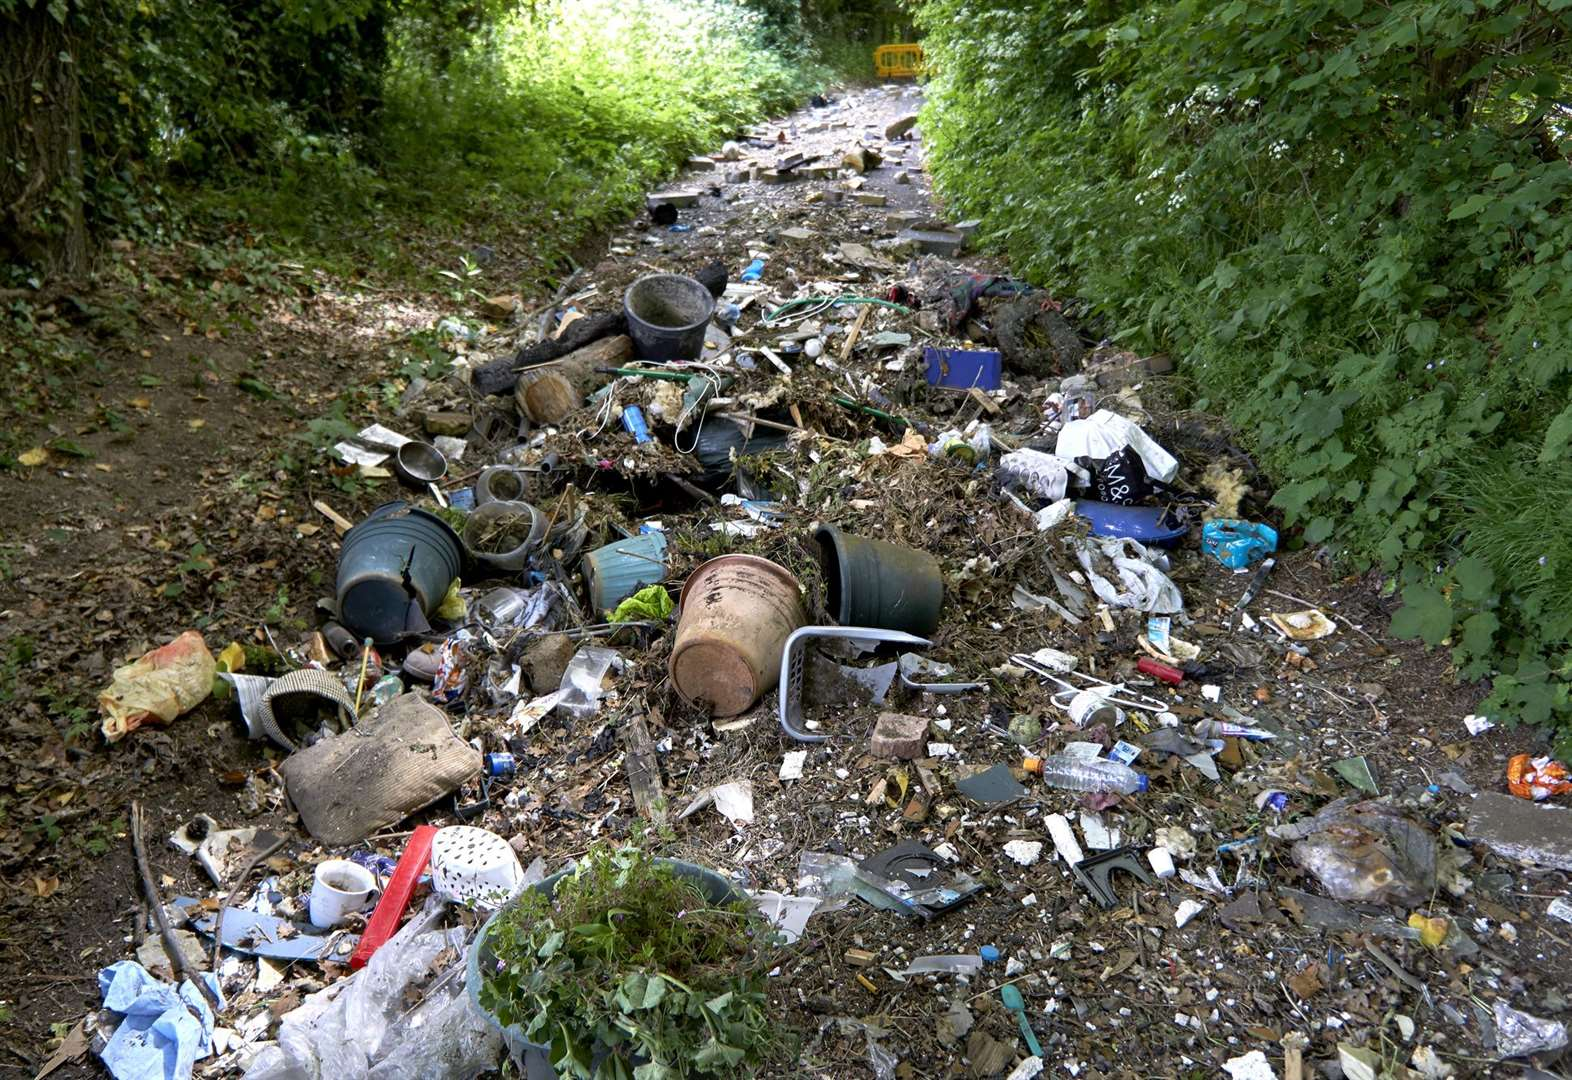 Road blocked by fly-tippers